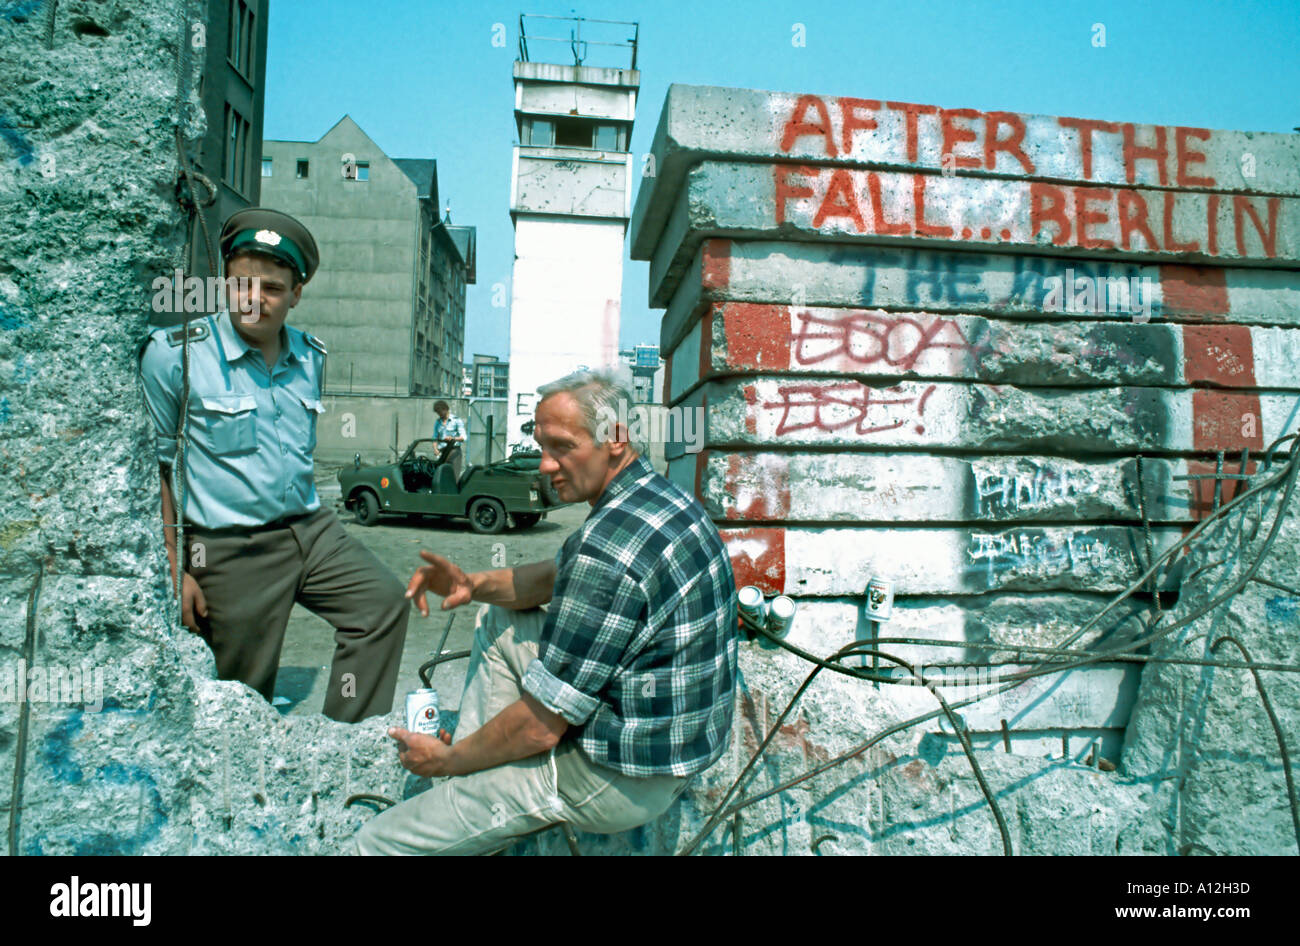 (Former East) Berlin Germany, GDR East German Border Guard at 'Berlin Wall' Looking through Wall, Talking to Man (Vintage Photo) - Stock Image